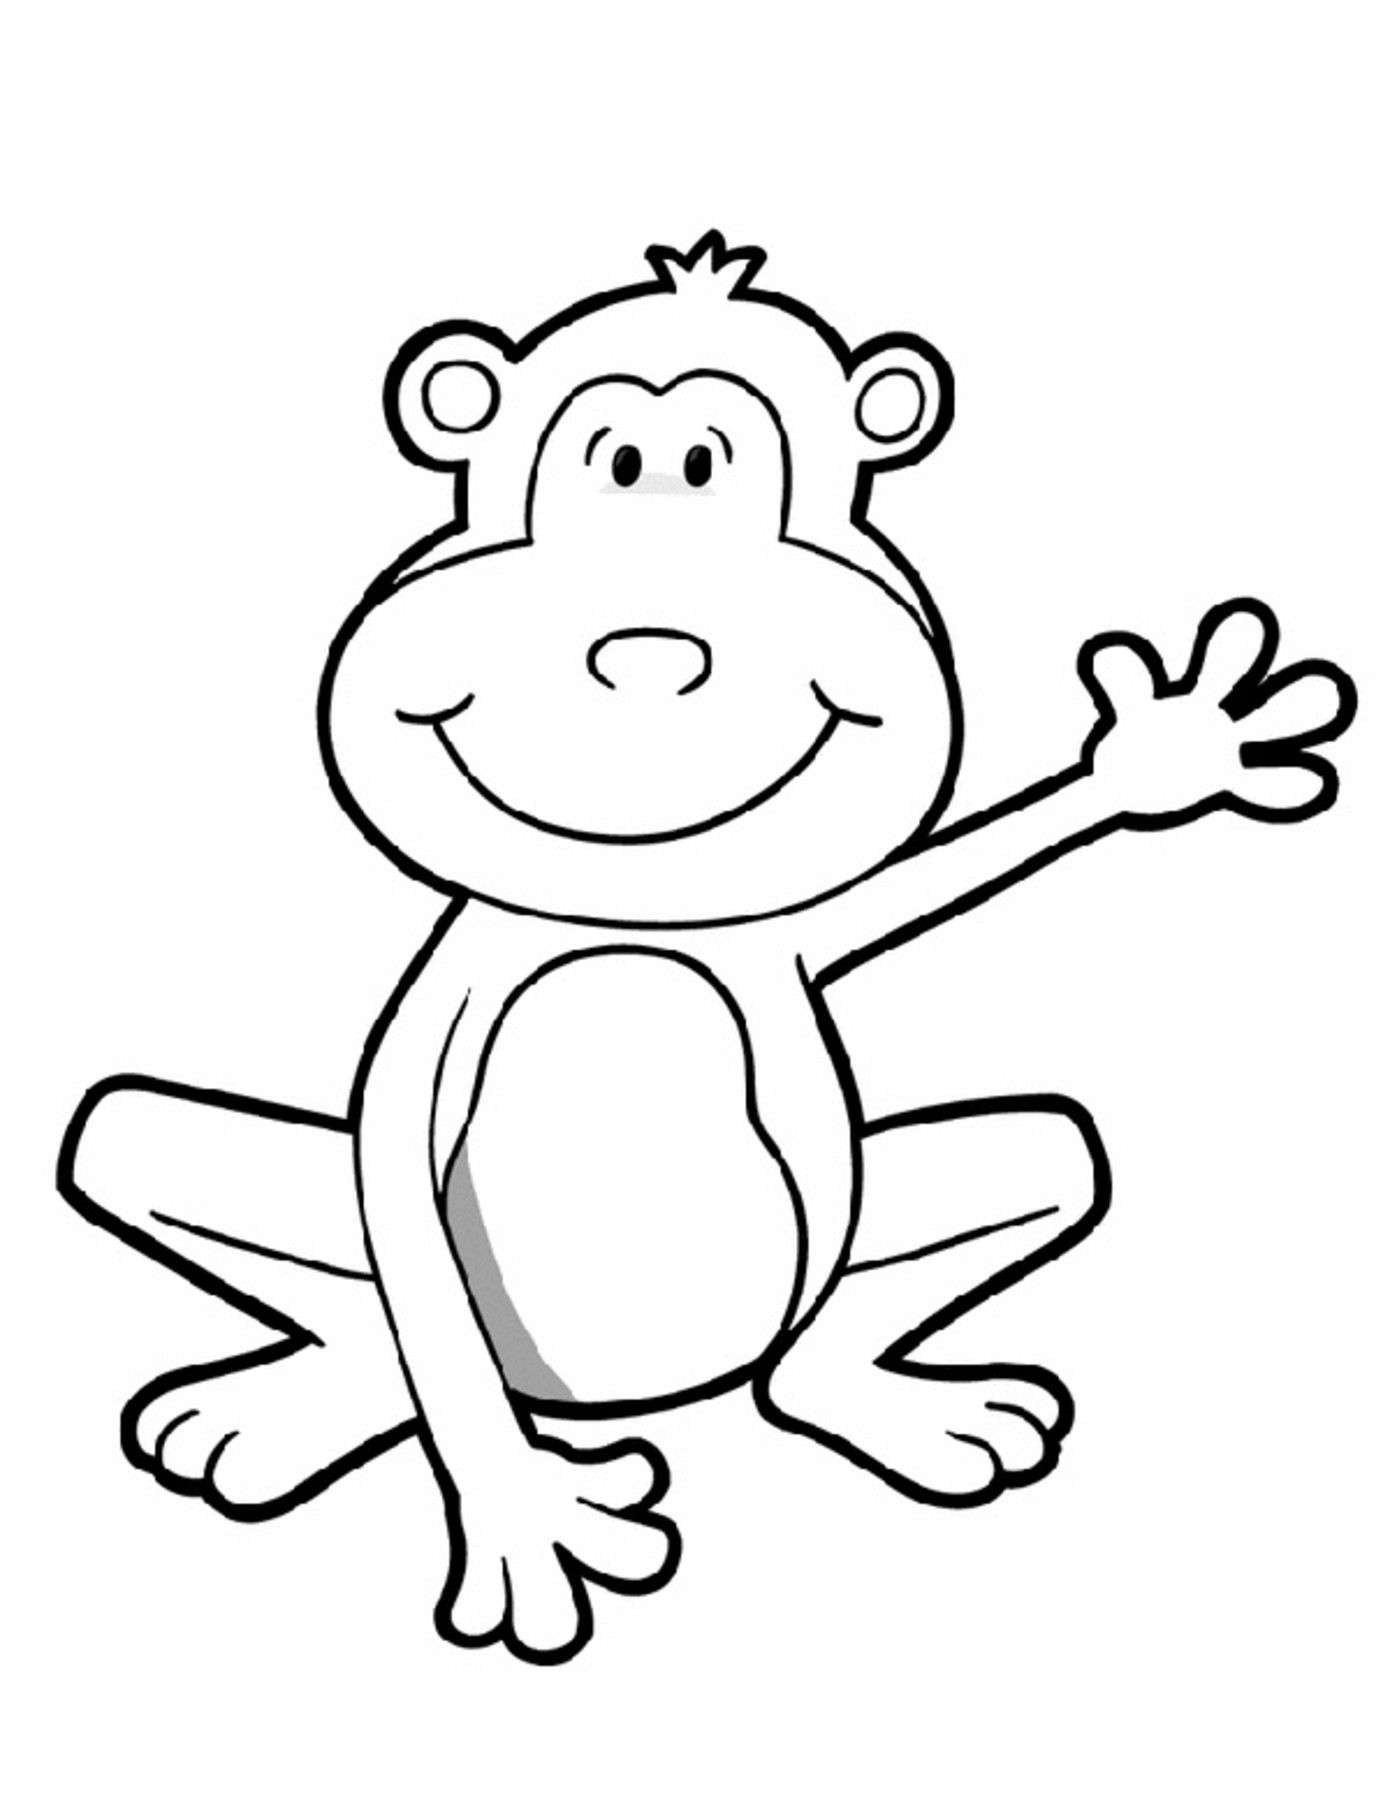 Animal coloring pages for kids | Monkey and Frogs